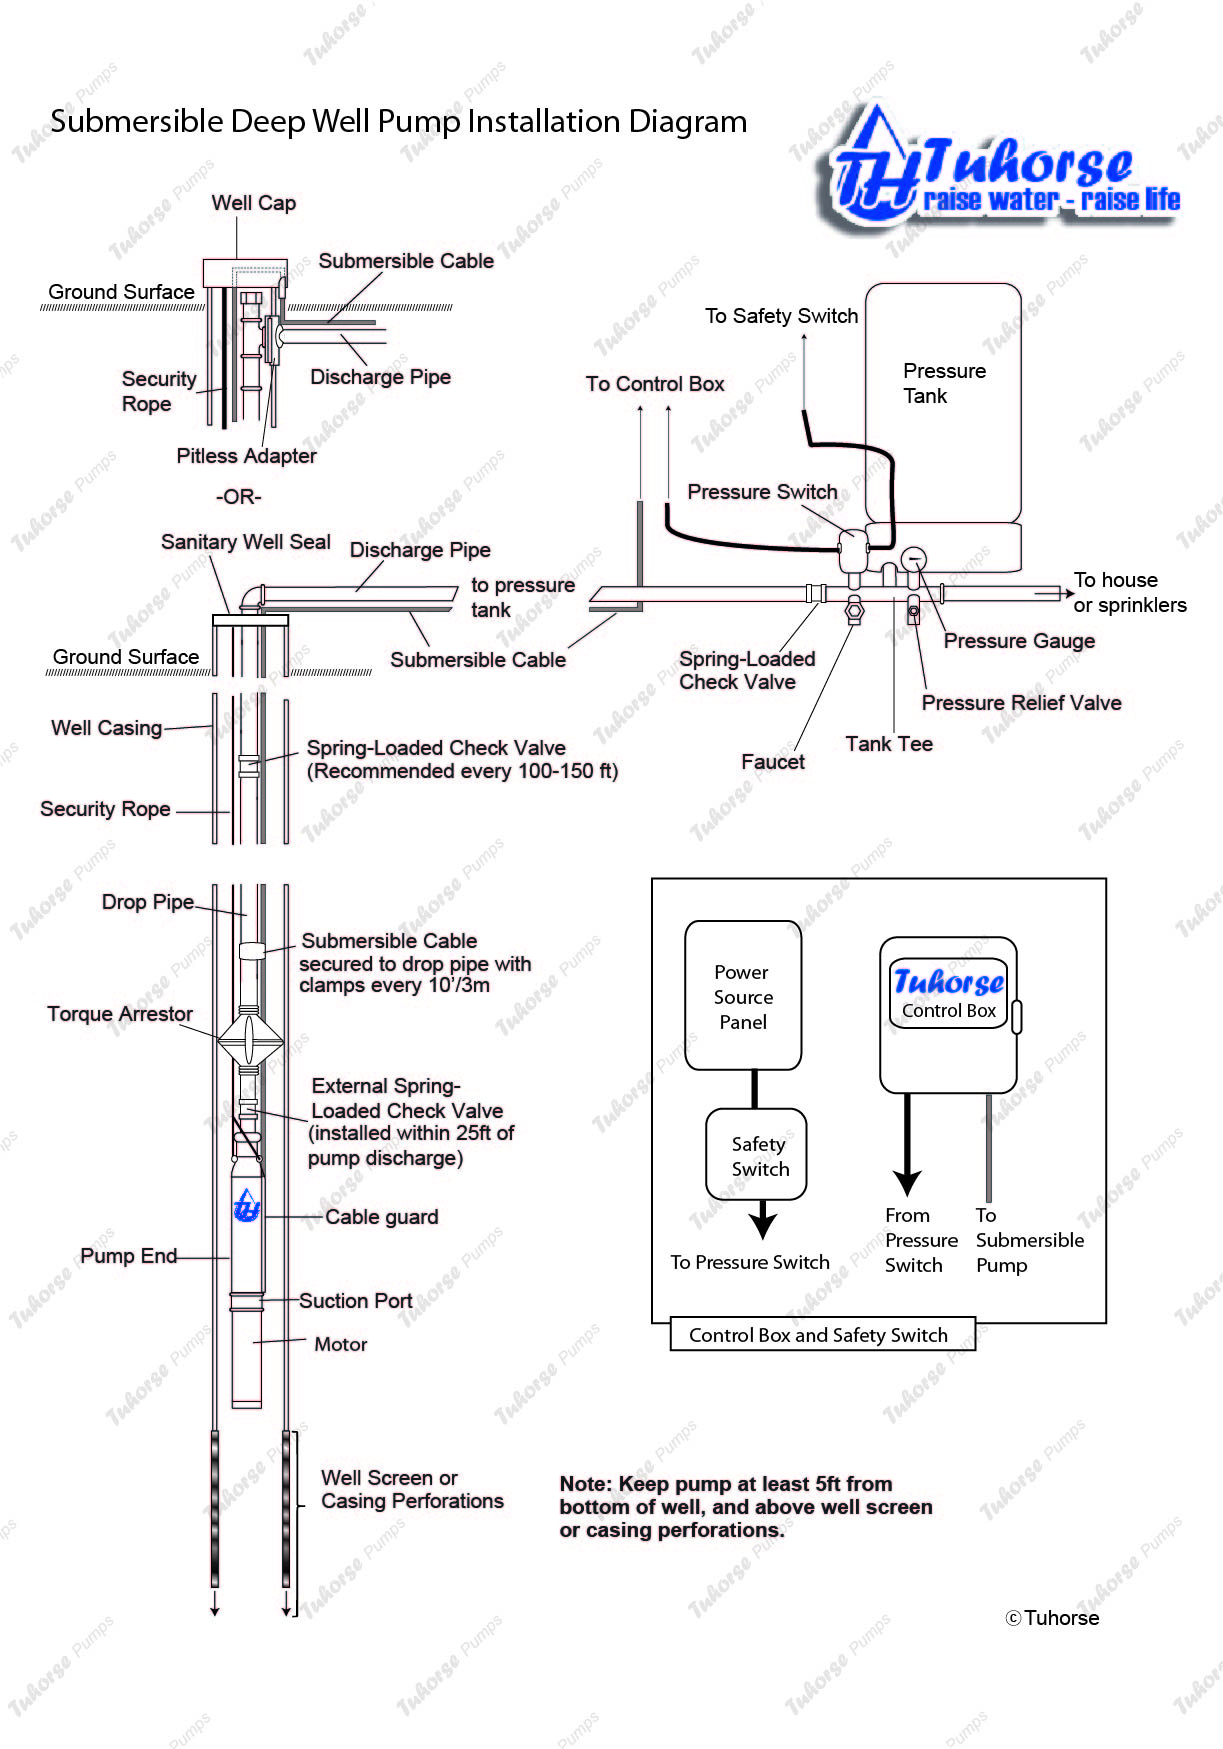 watermarkedinstallationdiagram4 pump installation wiring diagrams 3 phase irrigation pump panel at eliteediting.co